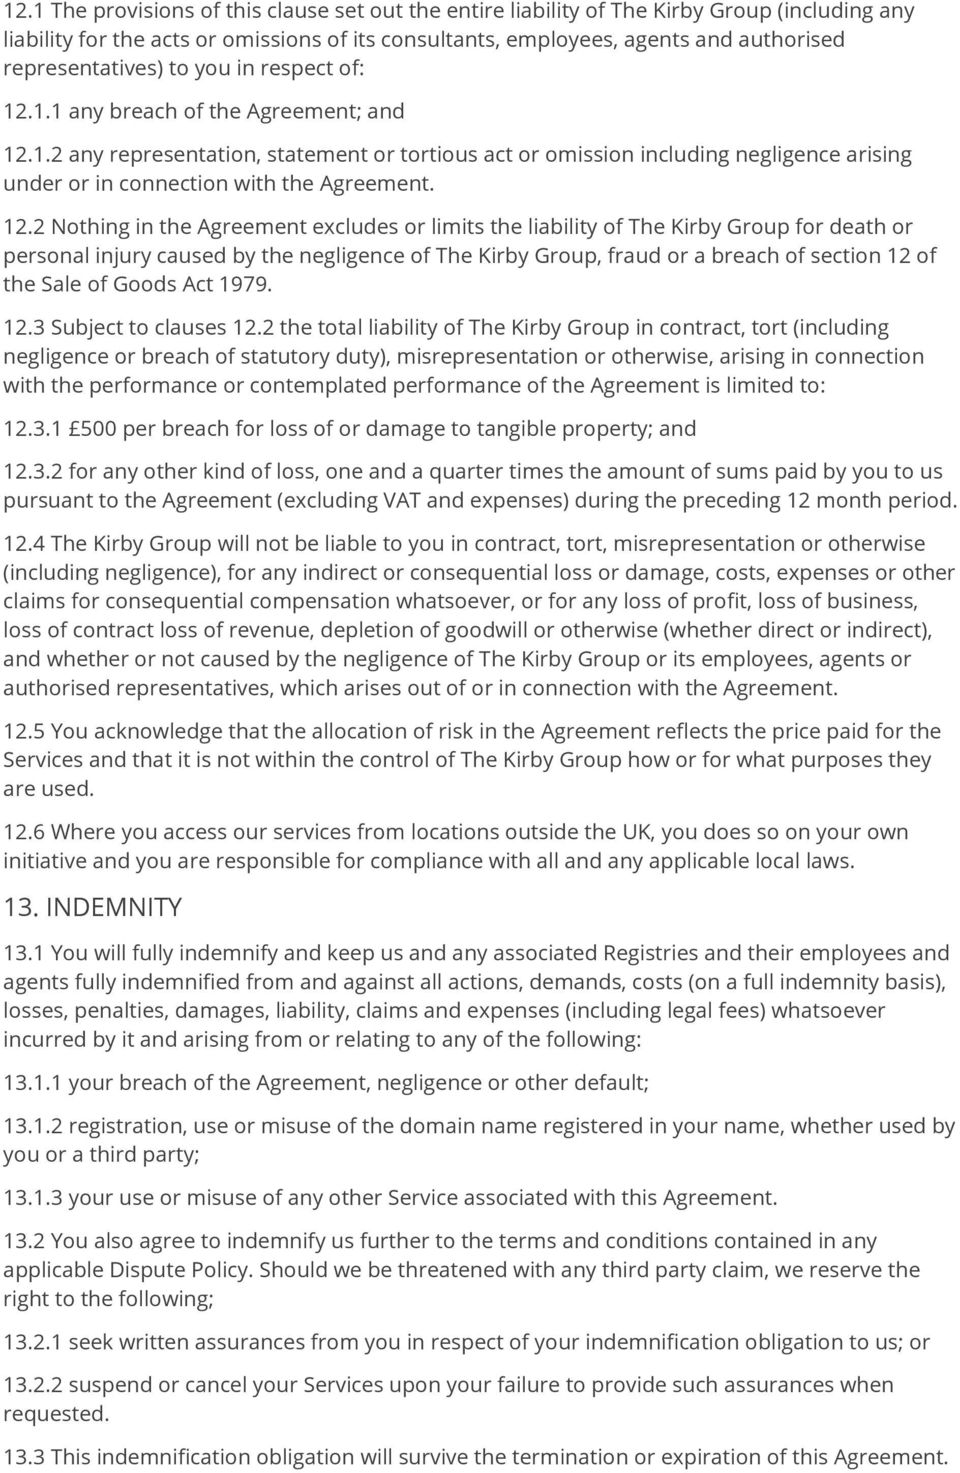 12.2 Nothing in the Agreement excludes or limits the liability of The Kirby Group for death or personal injury caused by the negligence of The Kirby Group, fraud or a breach of section 12 of the Sale